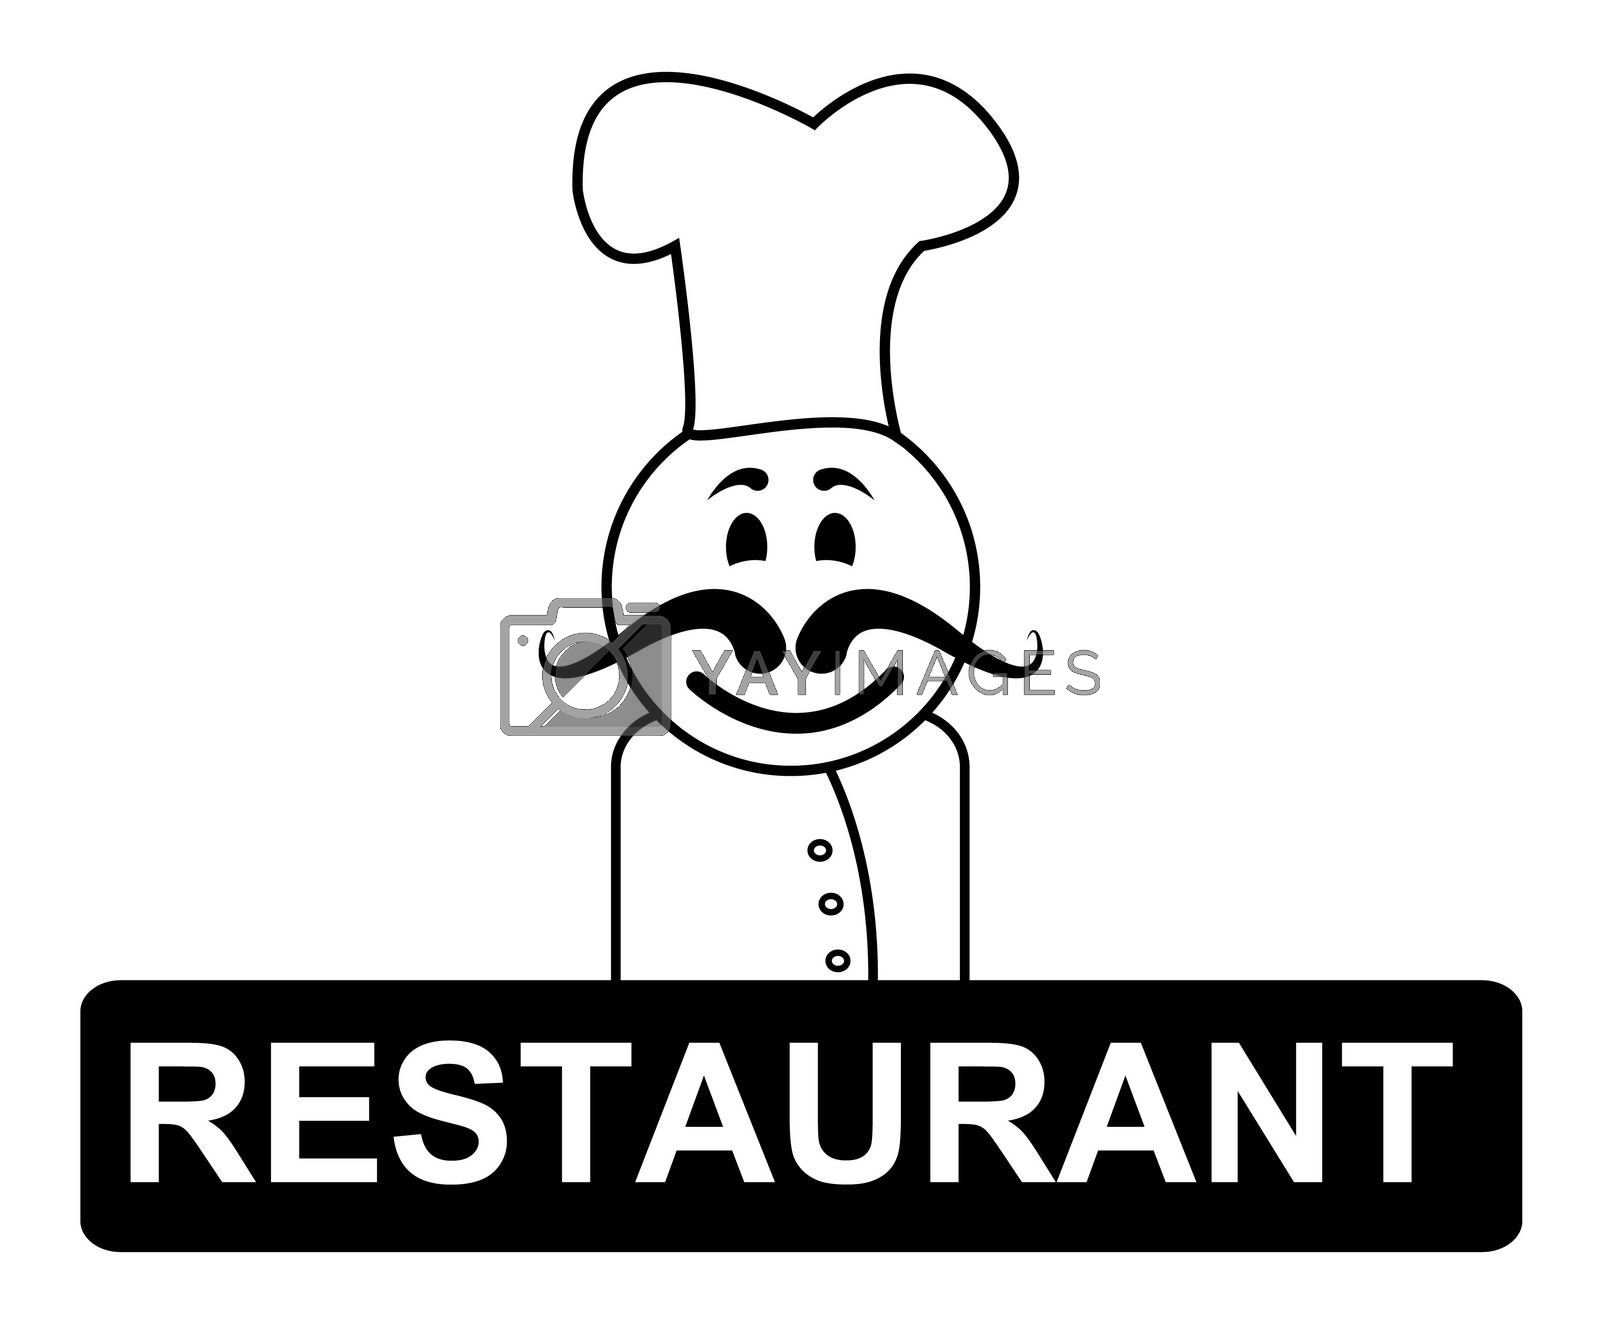 Restaurant Chef Indicates Cooking In Kitchen And Chefs by stuartmiles